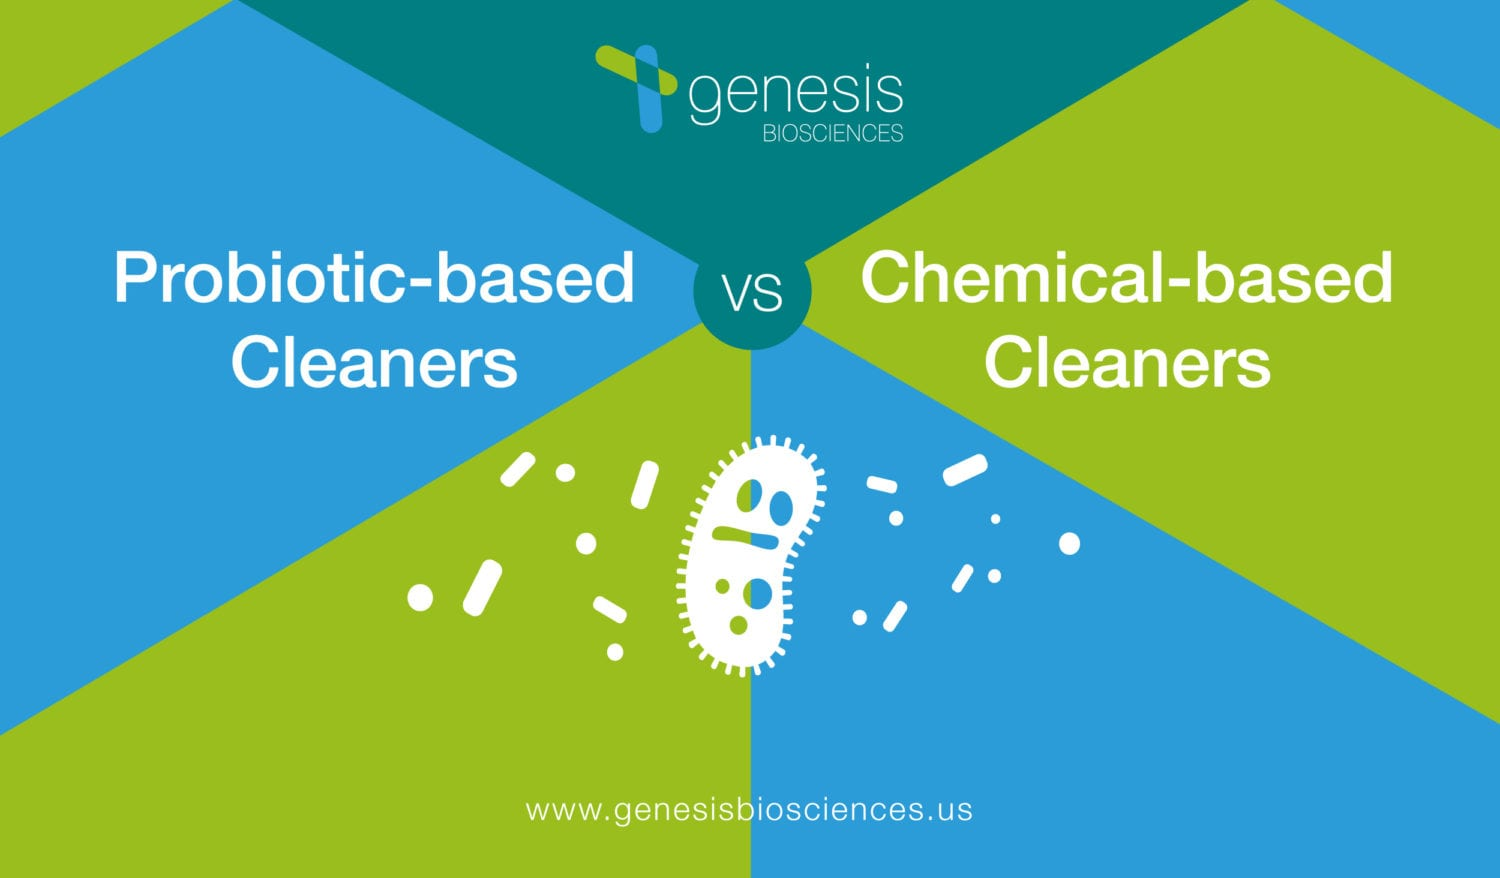 Probiotic cleaners vs chemical cleaners infographic